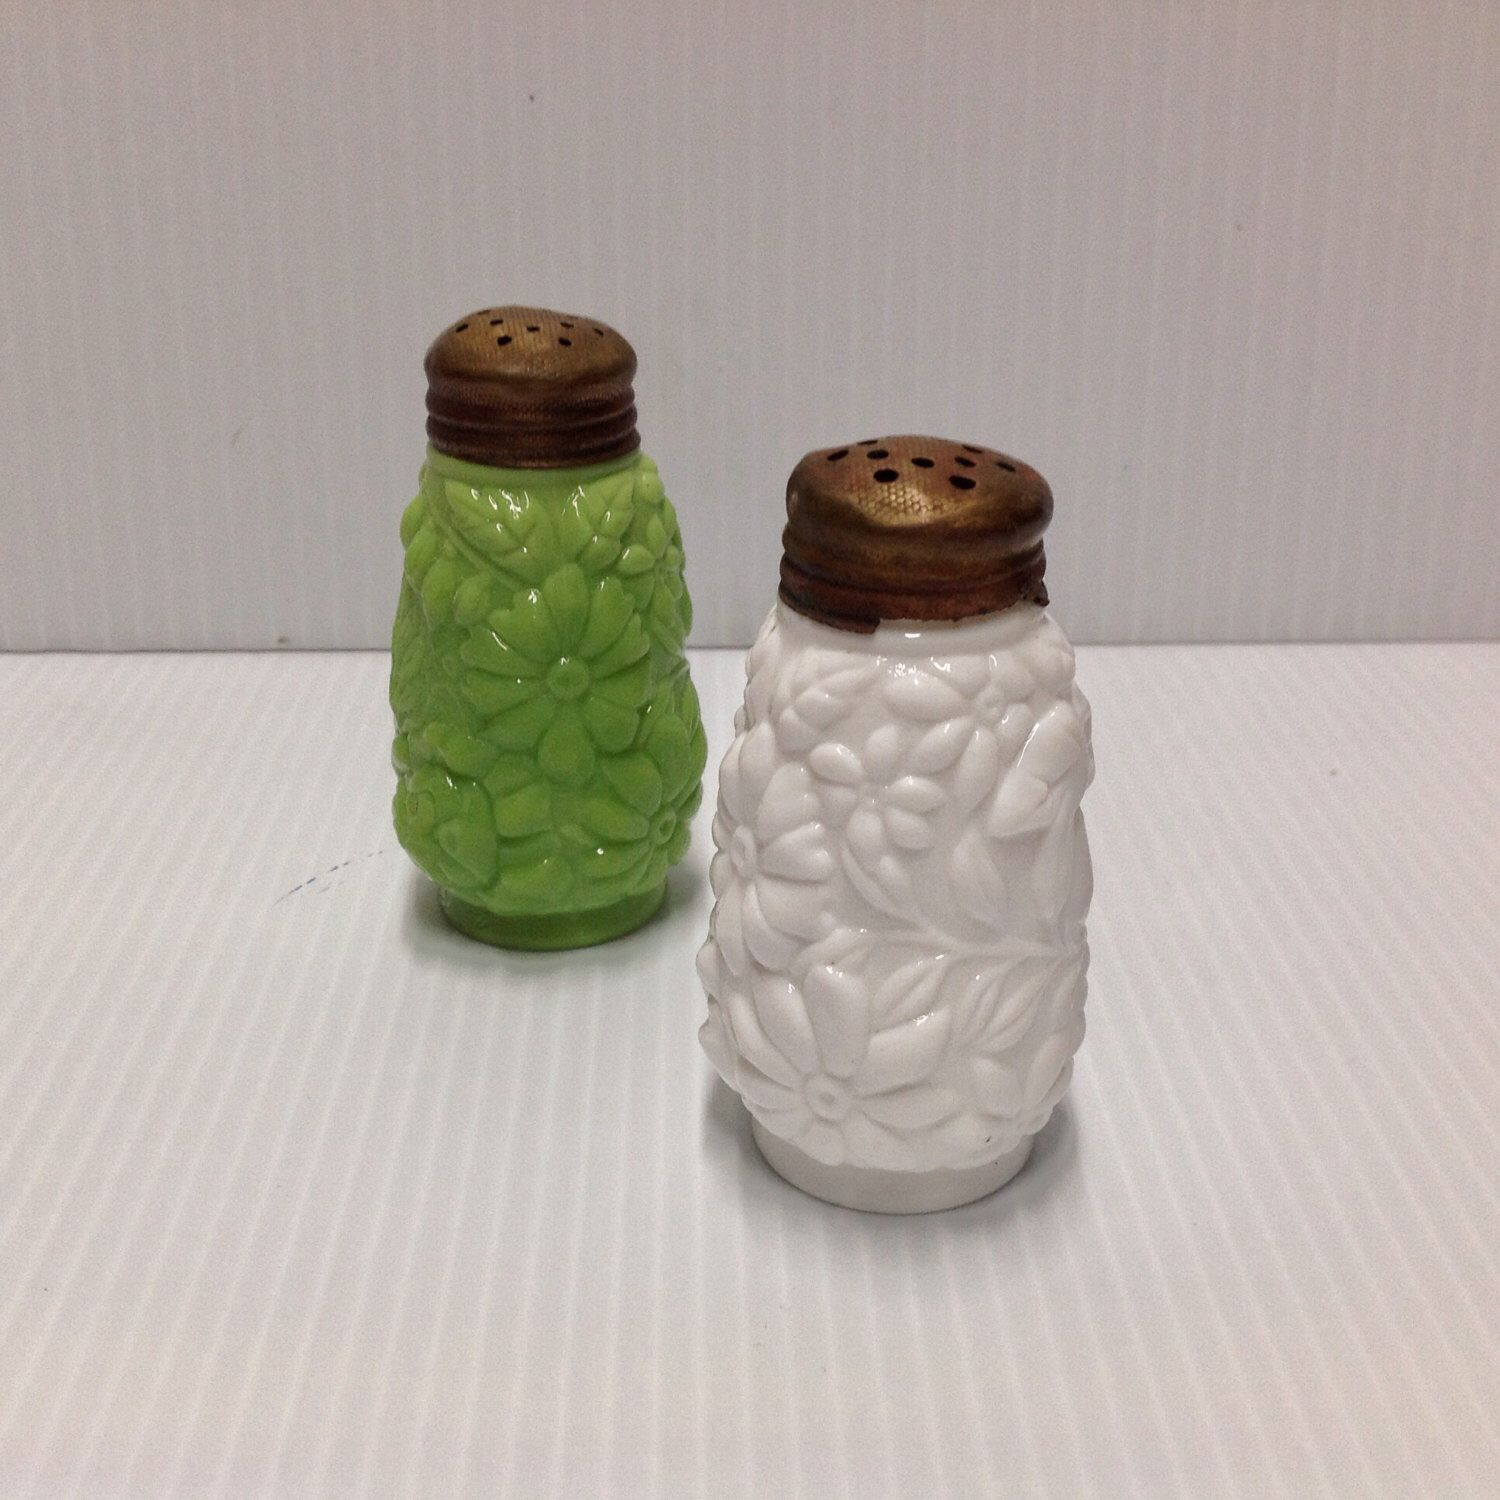 Vintage Salt & Pepper Shakers Milk Glass With Brass Shabby Chic ...